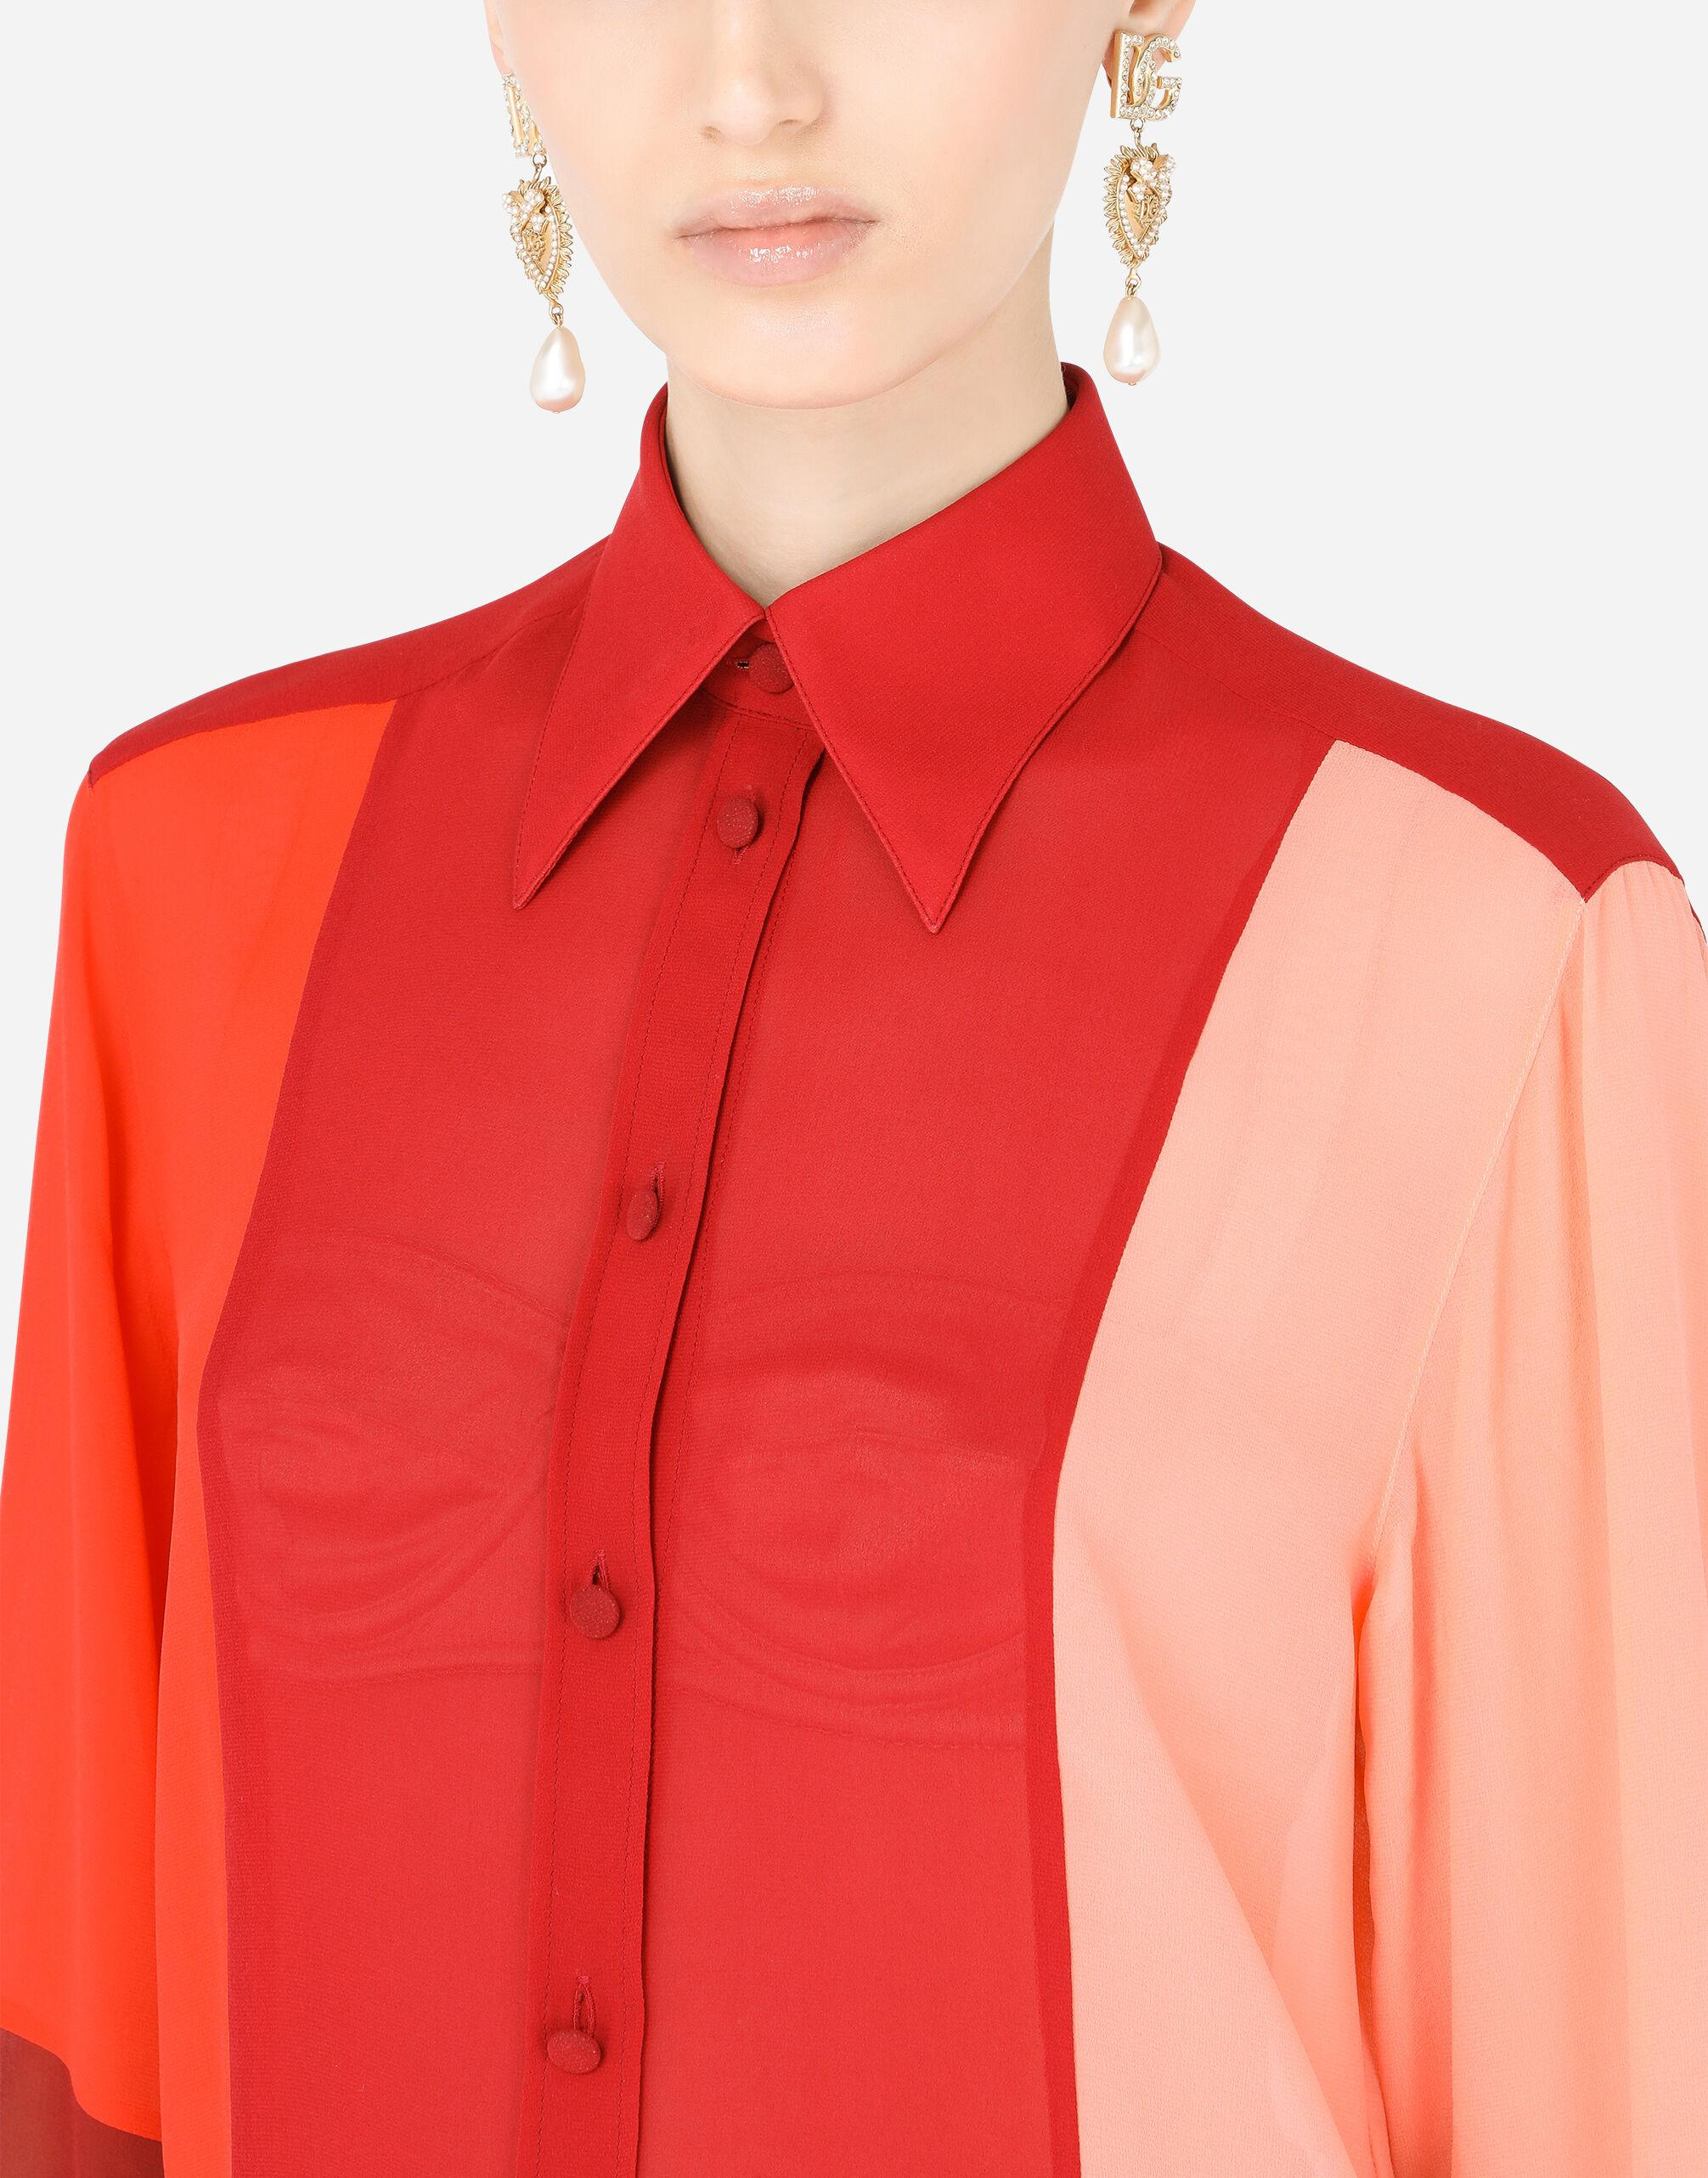 Multi-colored georgette patchwork shirt 4